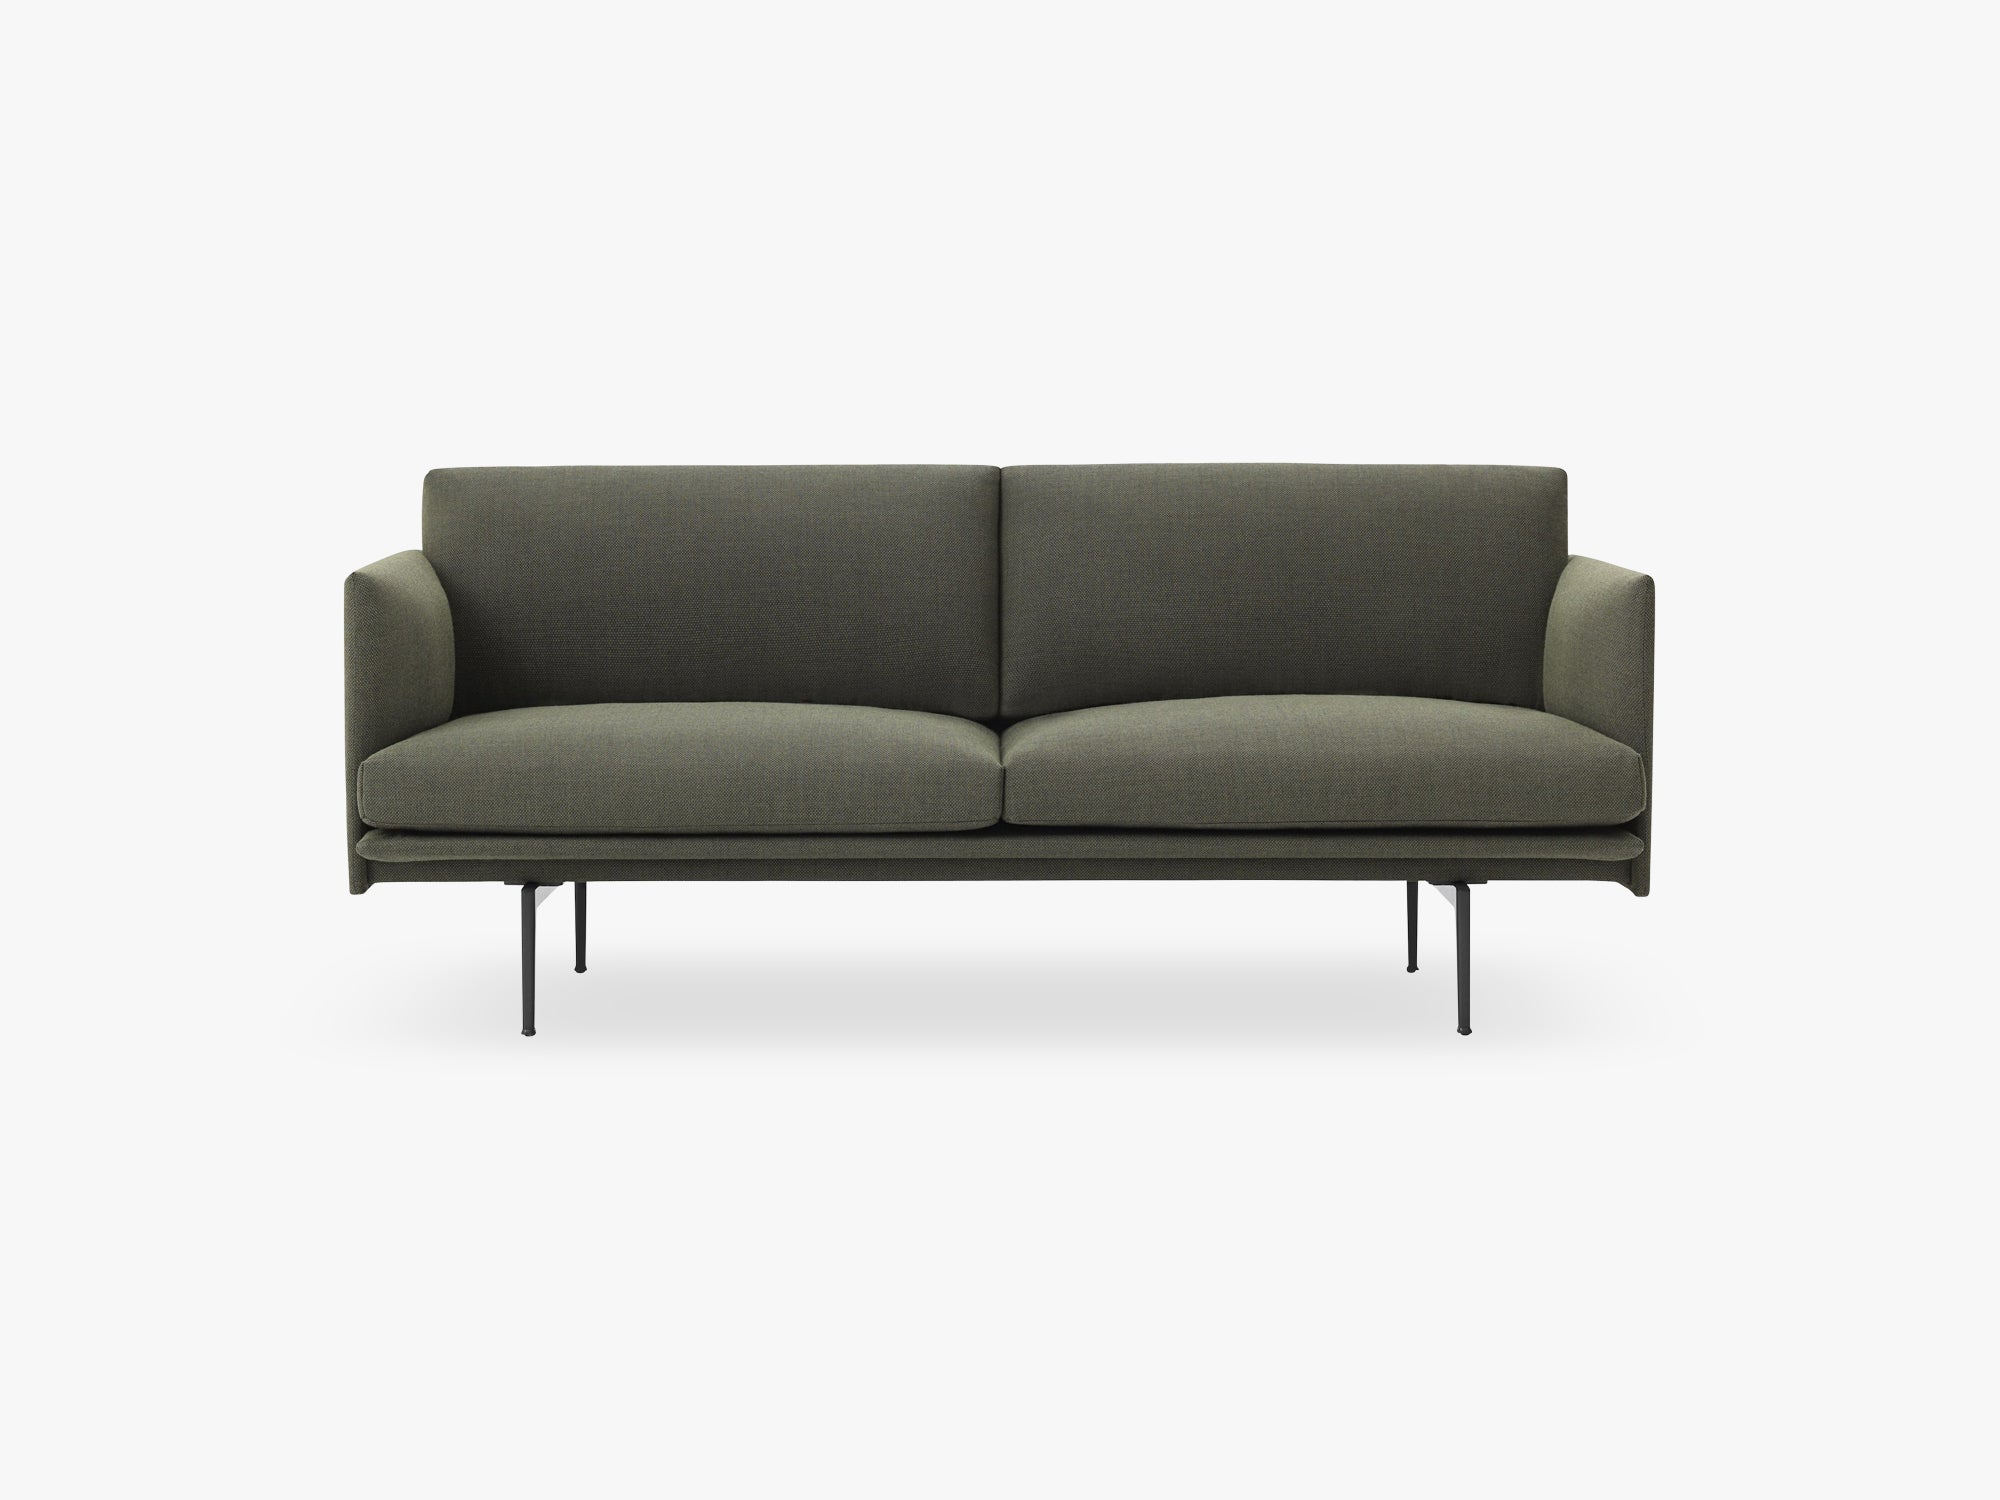 Outline Sofa - 2-Seater, Fiord 961 fra Muuto